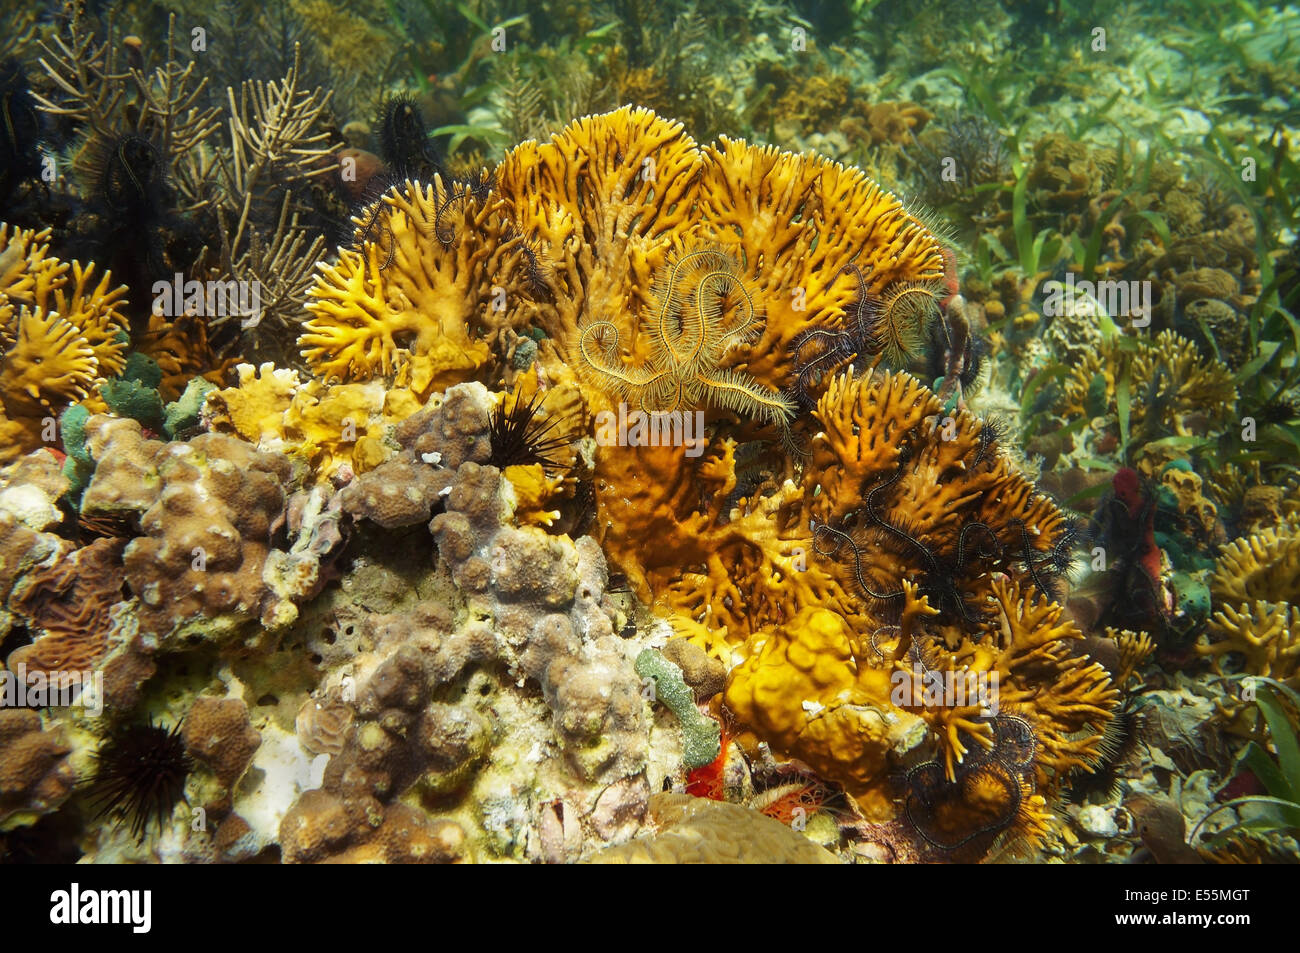 branching fire coral, Millepora alcicornis with brittle stars, Caribbean sea - Stock Image